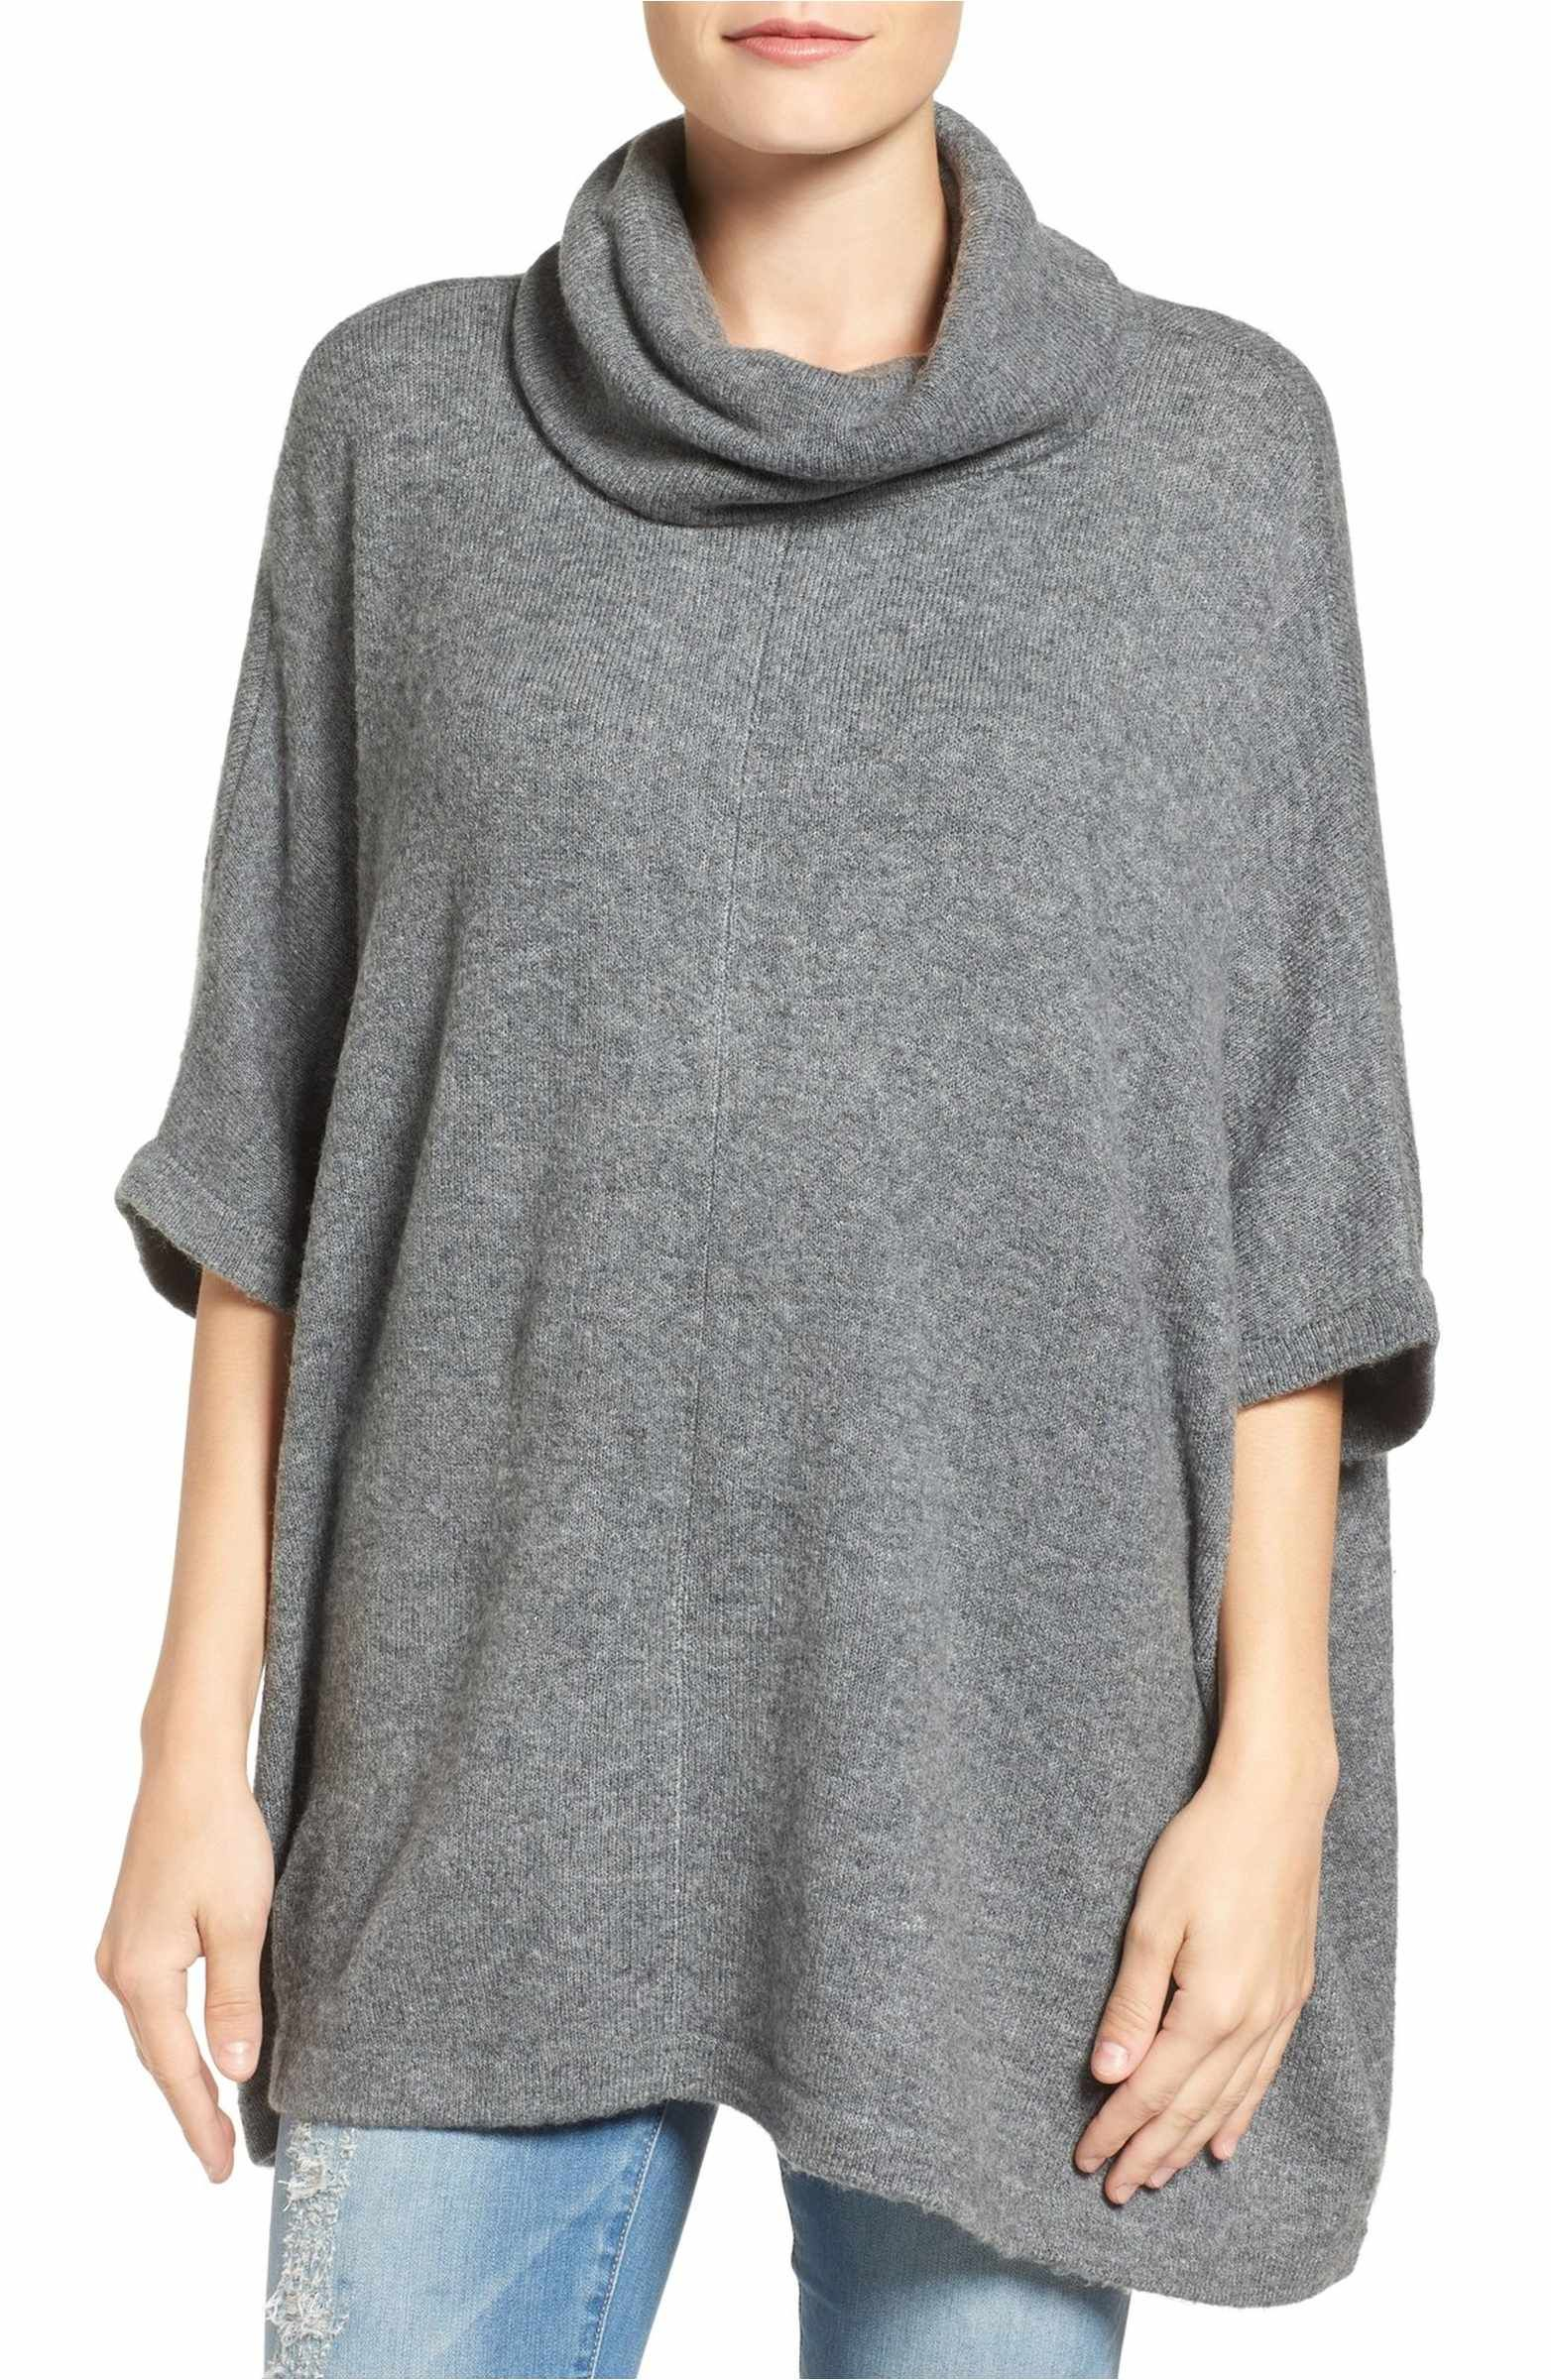 Cowl Neck Sweater Poncho | Cowl neck and Ponchos